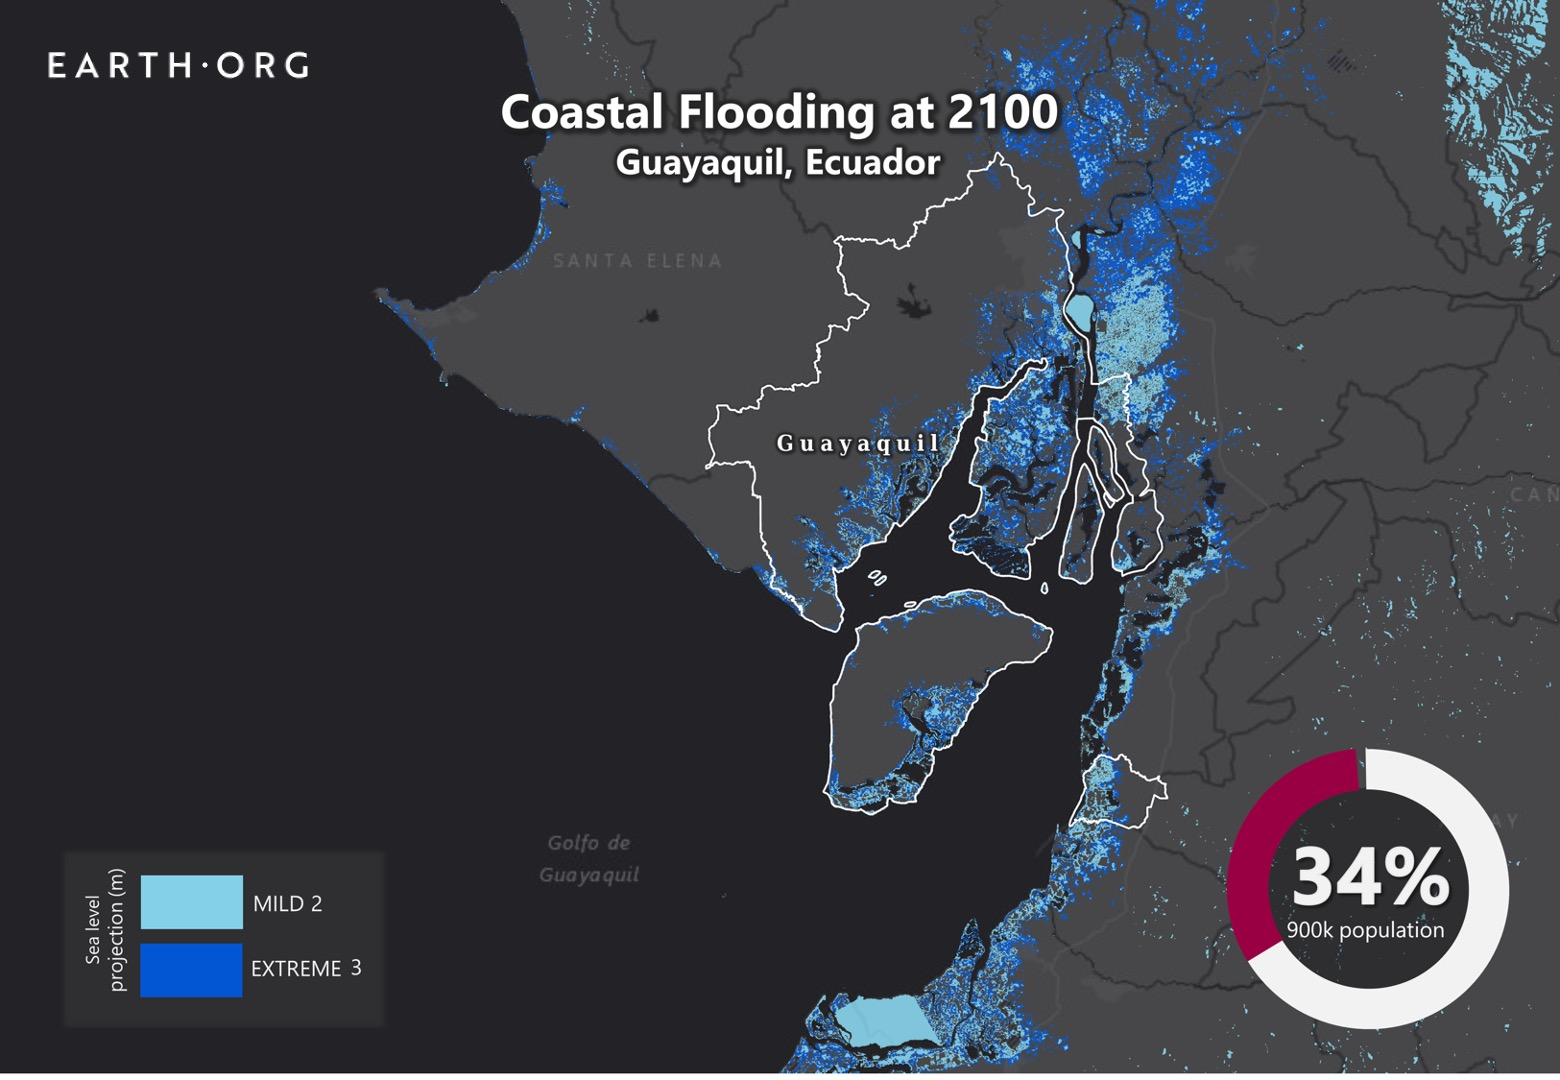 sea level rise by 2100 guayaquil